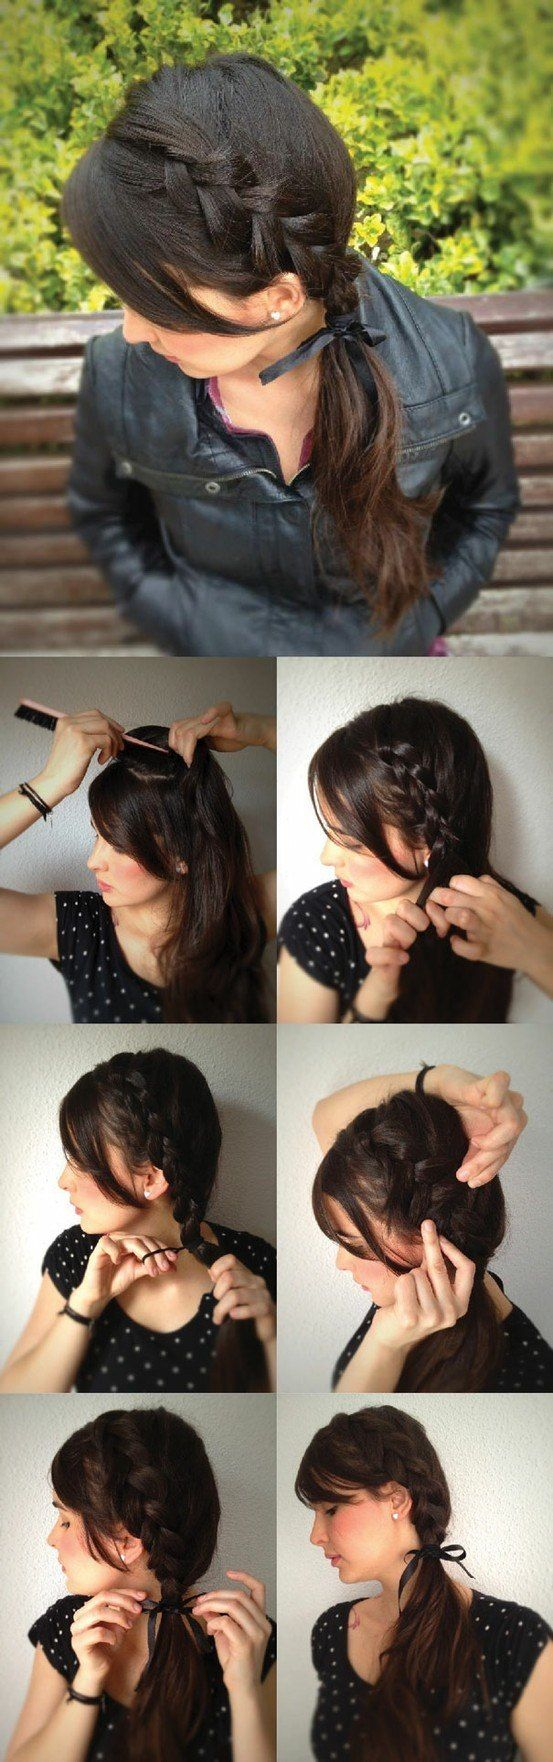 must learn this too!: Hair Ideas, French Braids, Long Hair, Braids Ponytail, Hairstyle, Hair Style, Side Ponytail, Side Braids, Ponies Tail